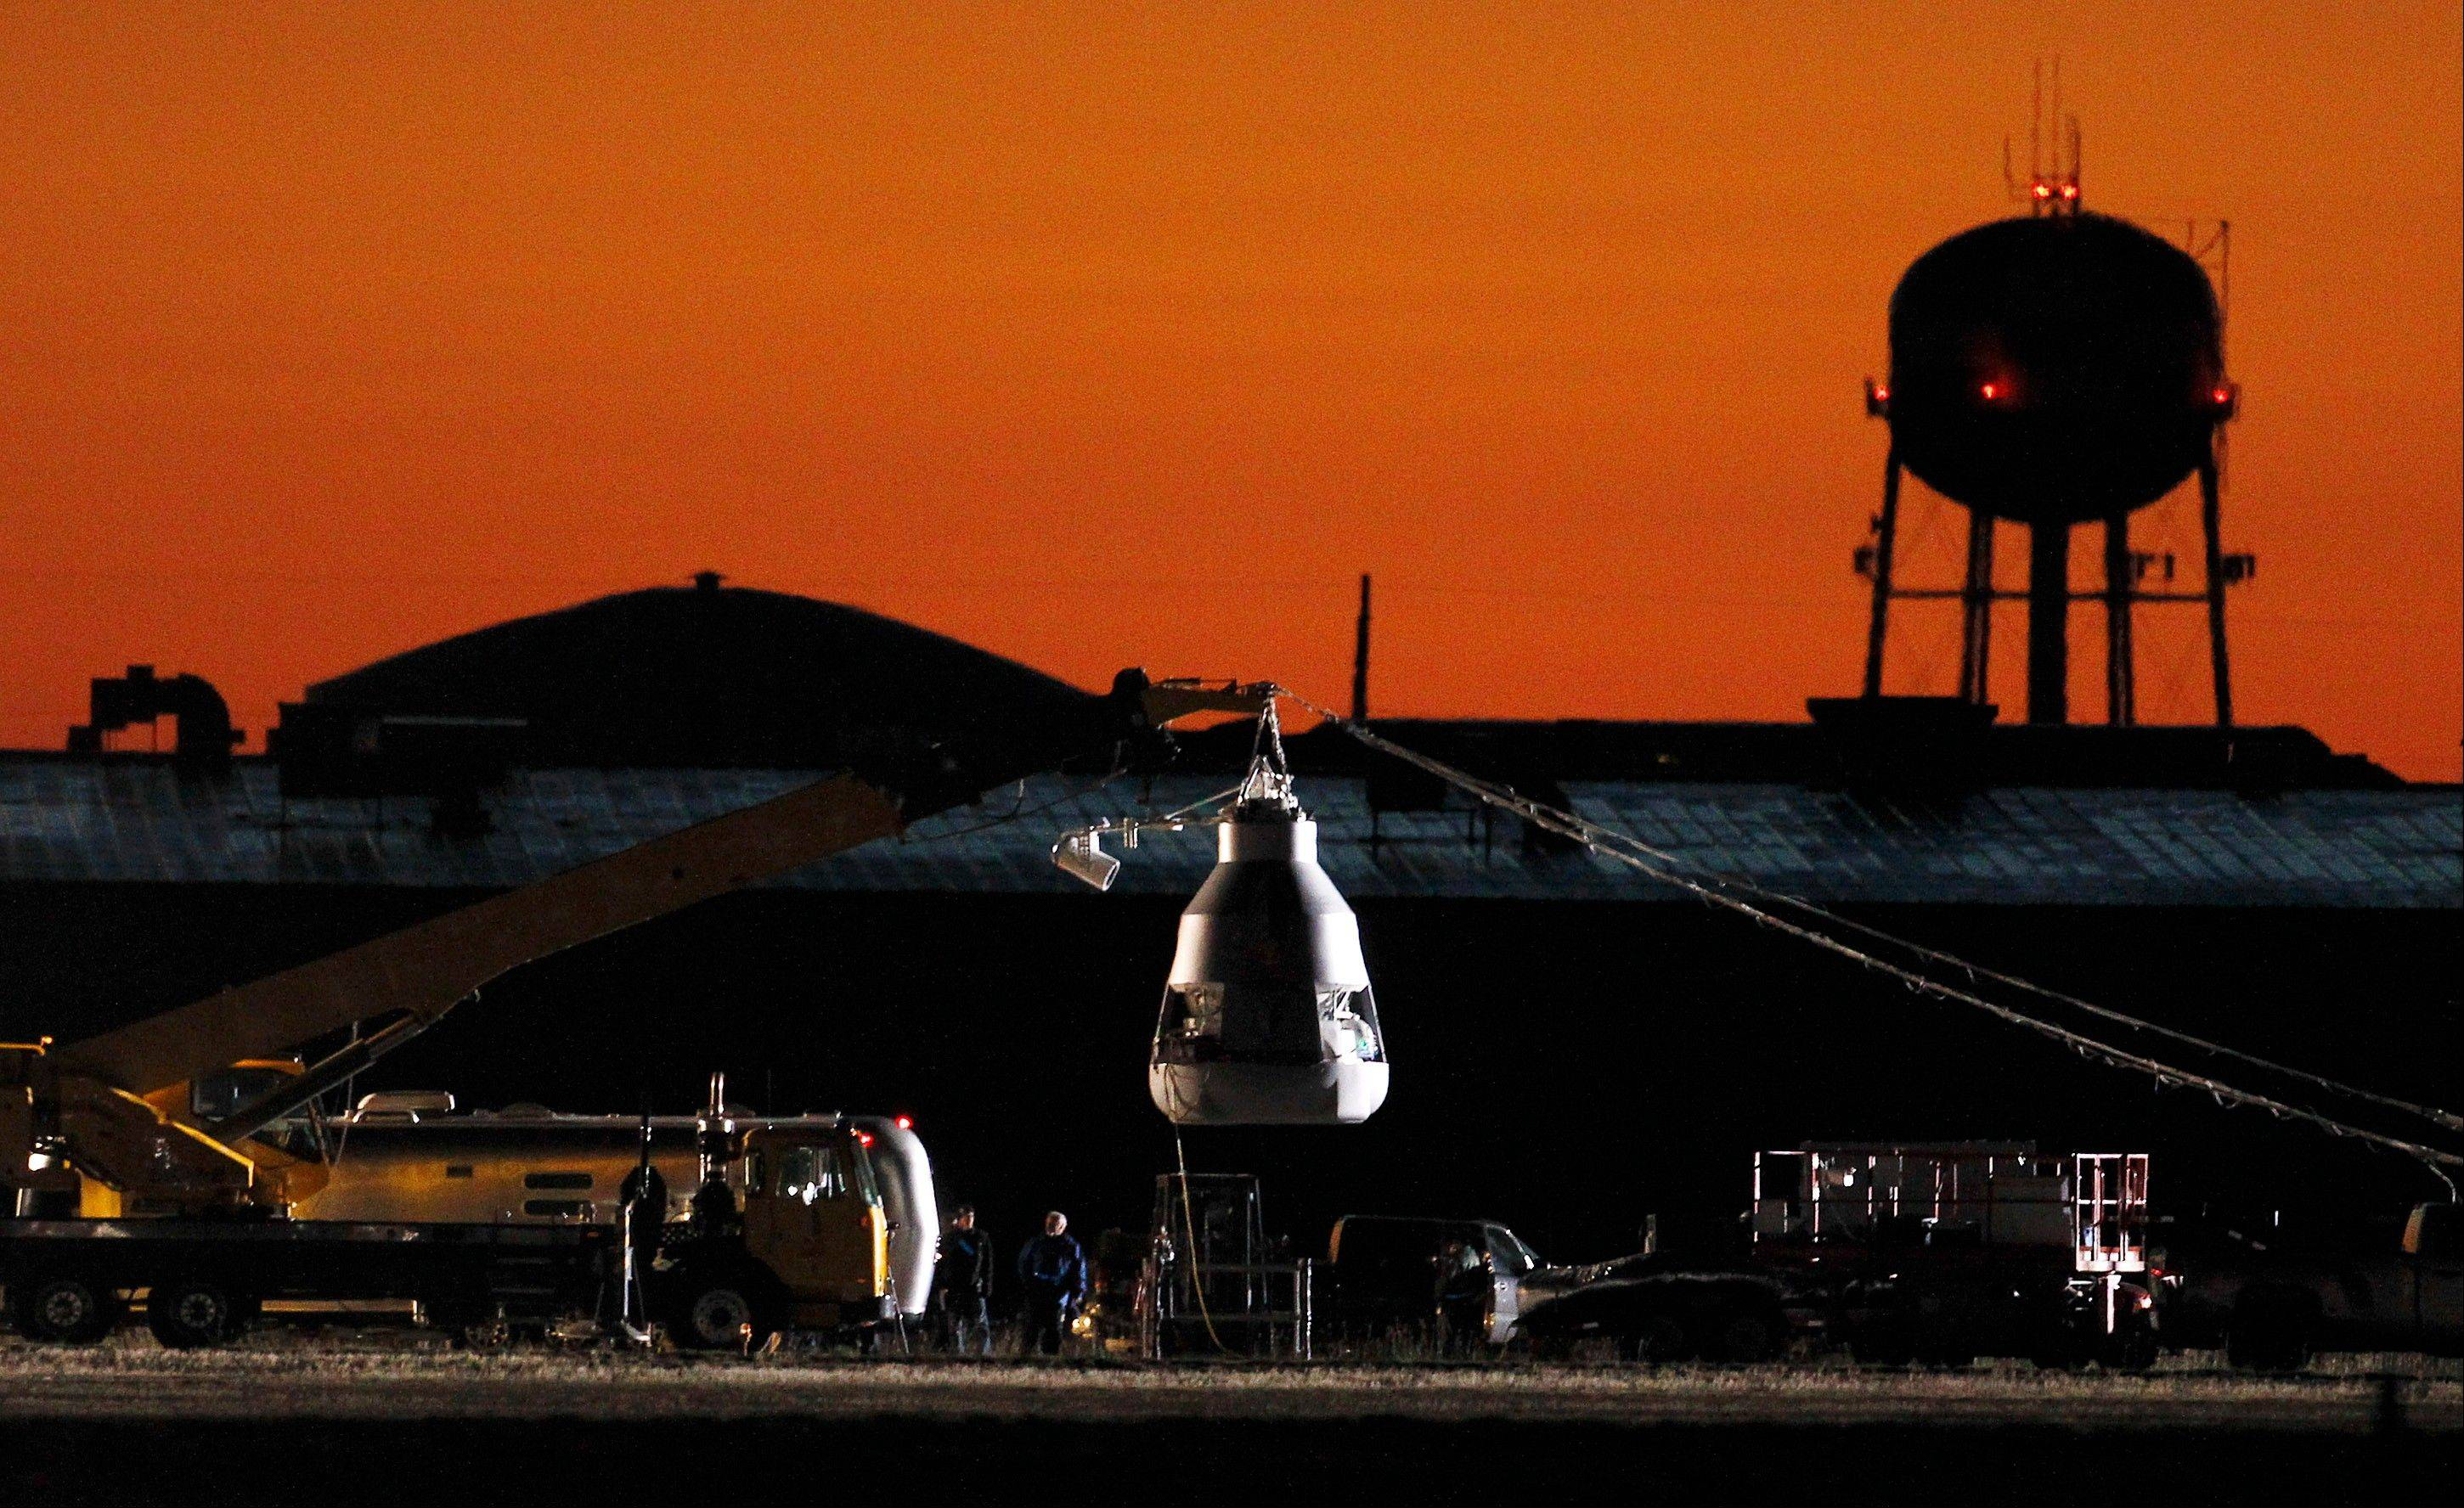 As the sun rises, workers prepare at the launch site, ahead of an attempt by Felix Baumgartner to break the speed of sound with his own body by jumping from a space capsule lifted by a helium balloon, Sunday, Oct. 14, 2012, in Roswell, N.M. Baumgartner plans to jump from an altitude of 120,000 feet, an altitude chosen to enable him to achieve Mach 1 in free fall, which would deliver scientific data to the aerospace community about human survival from high altitudes.